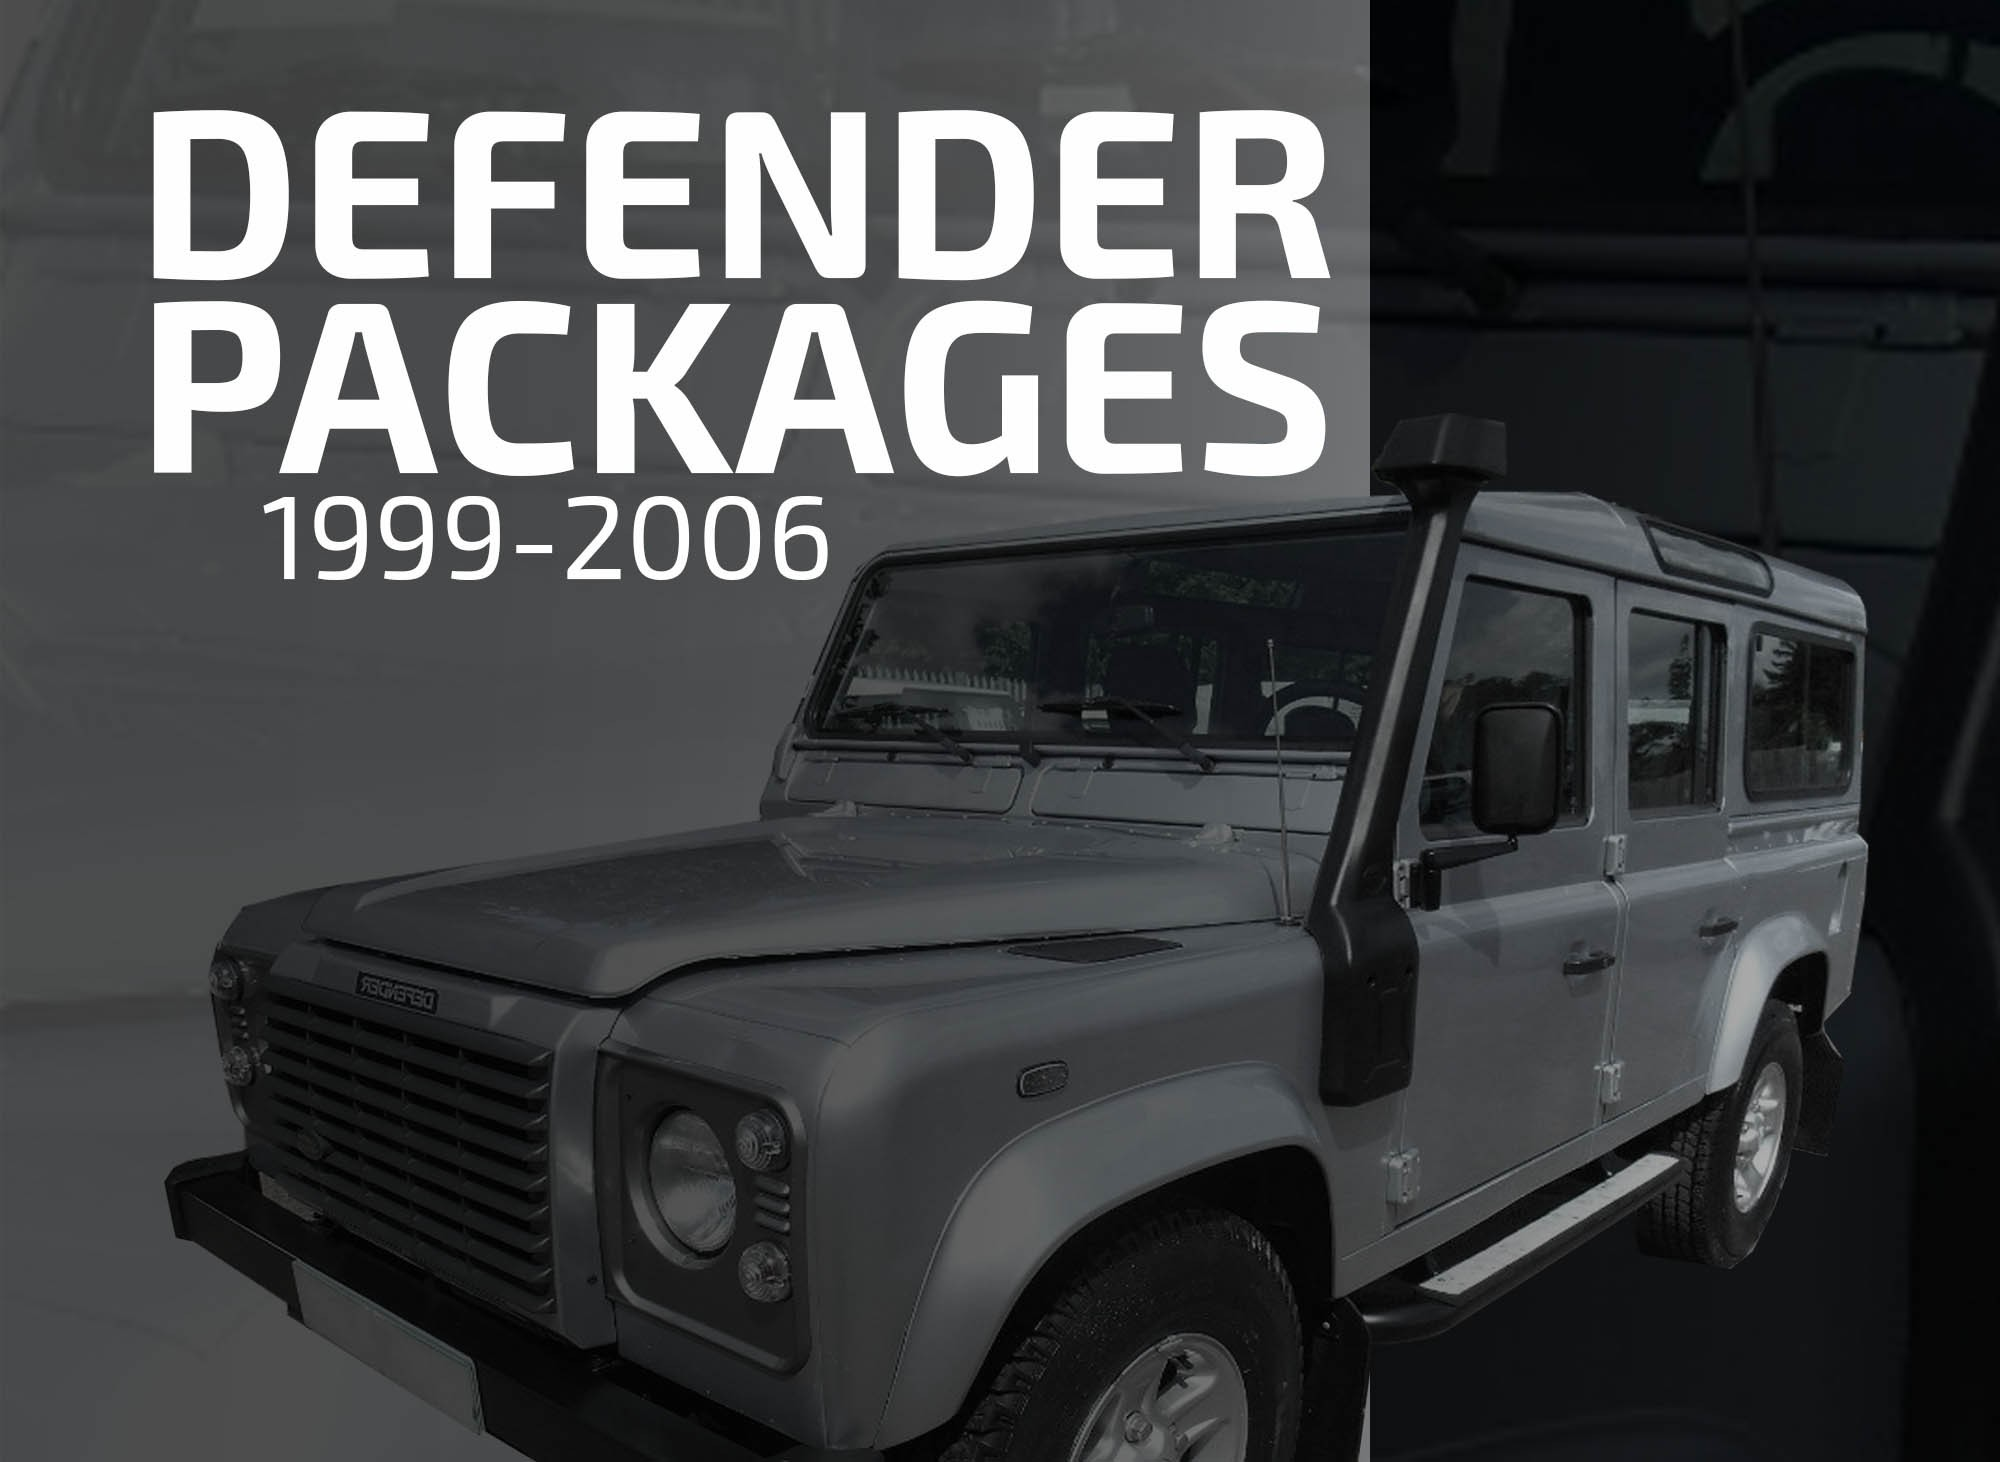 Defender packages